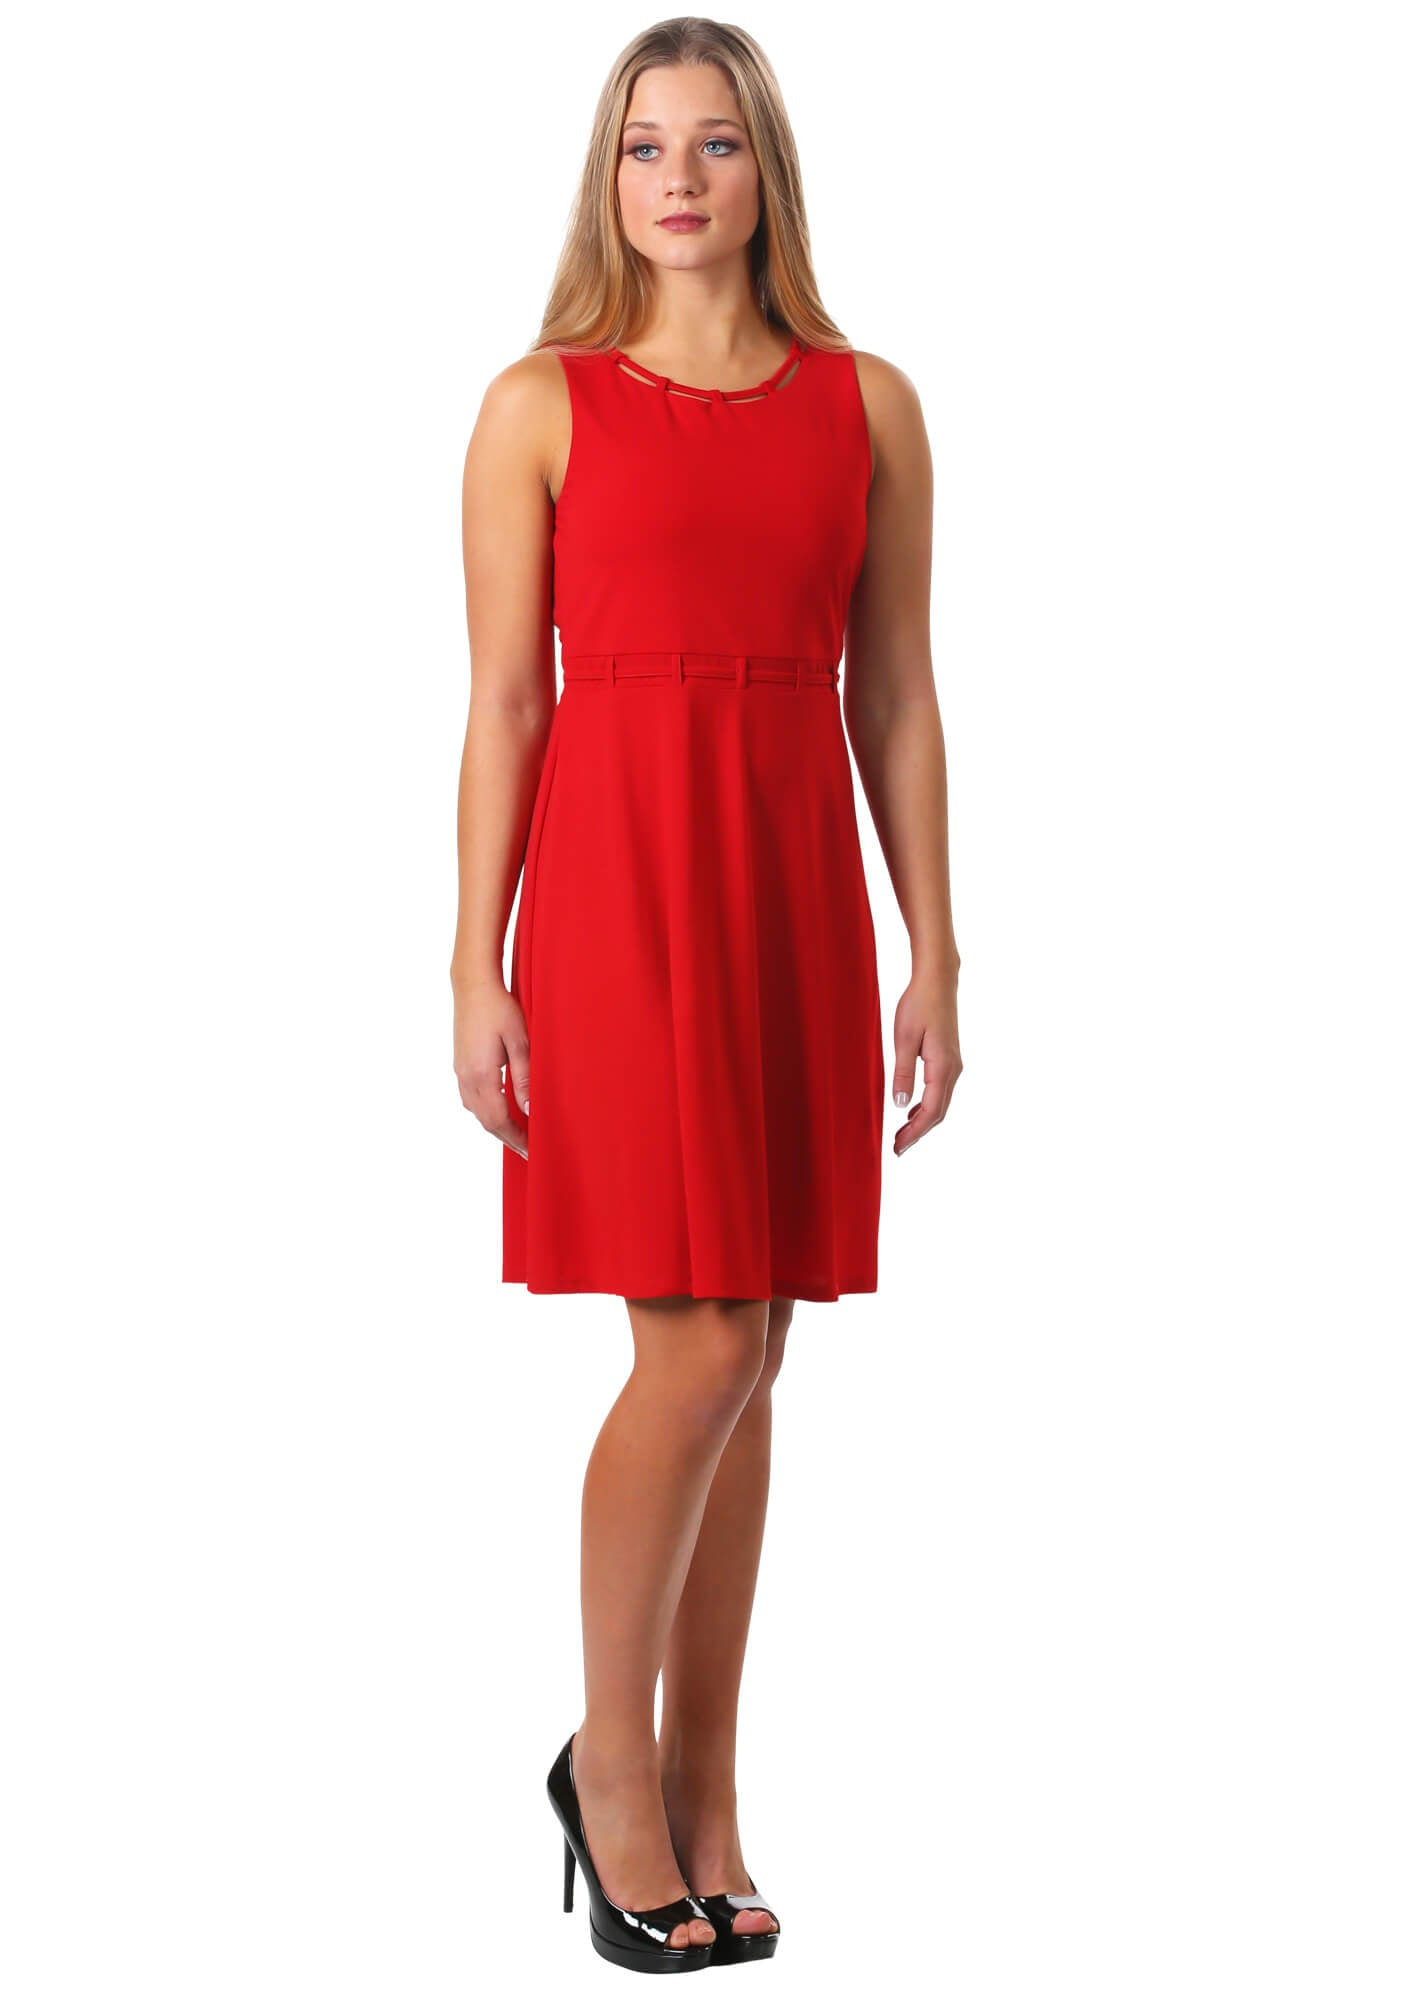 Looped Trim Fit and Flare Dress in Red